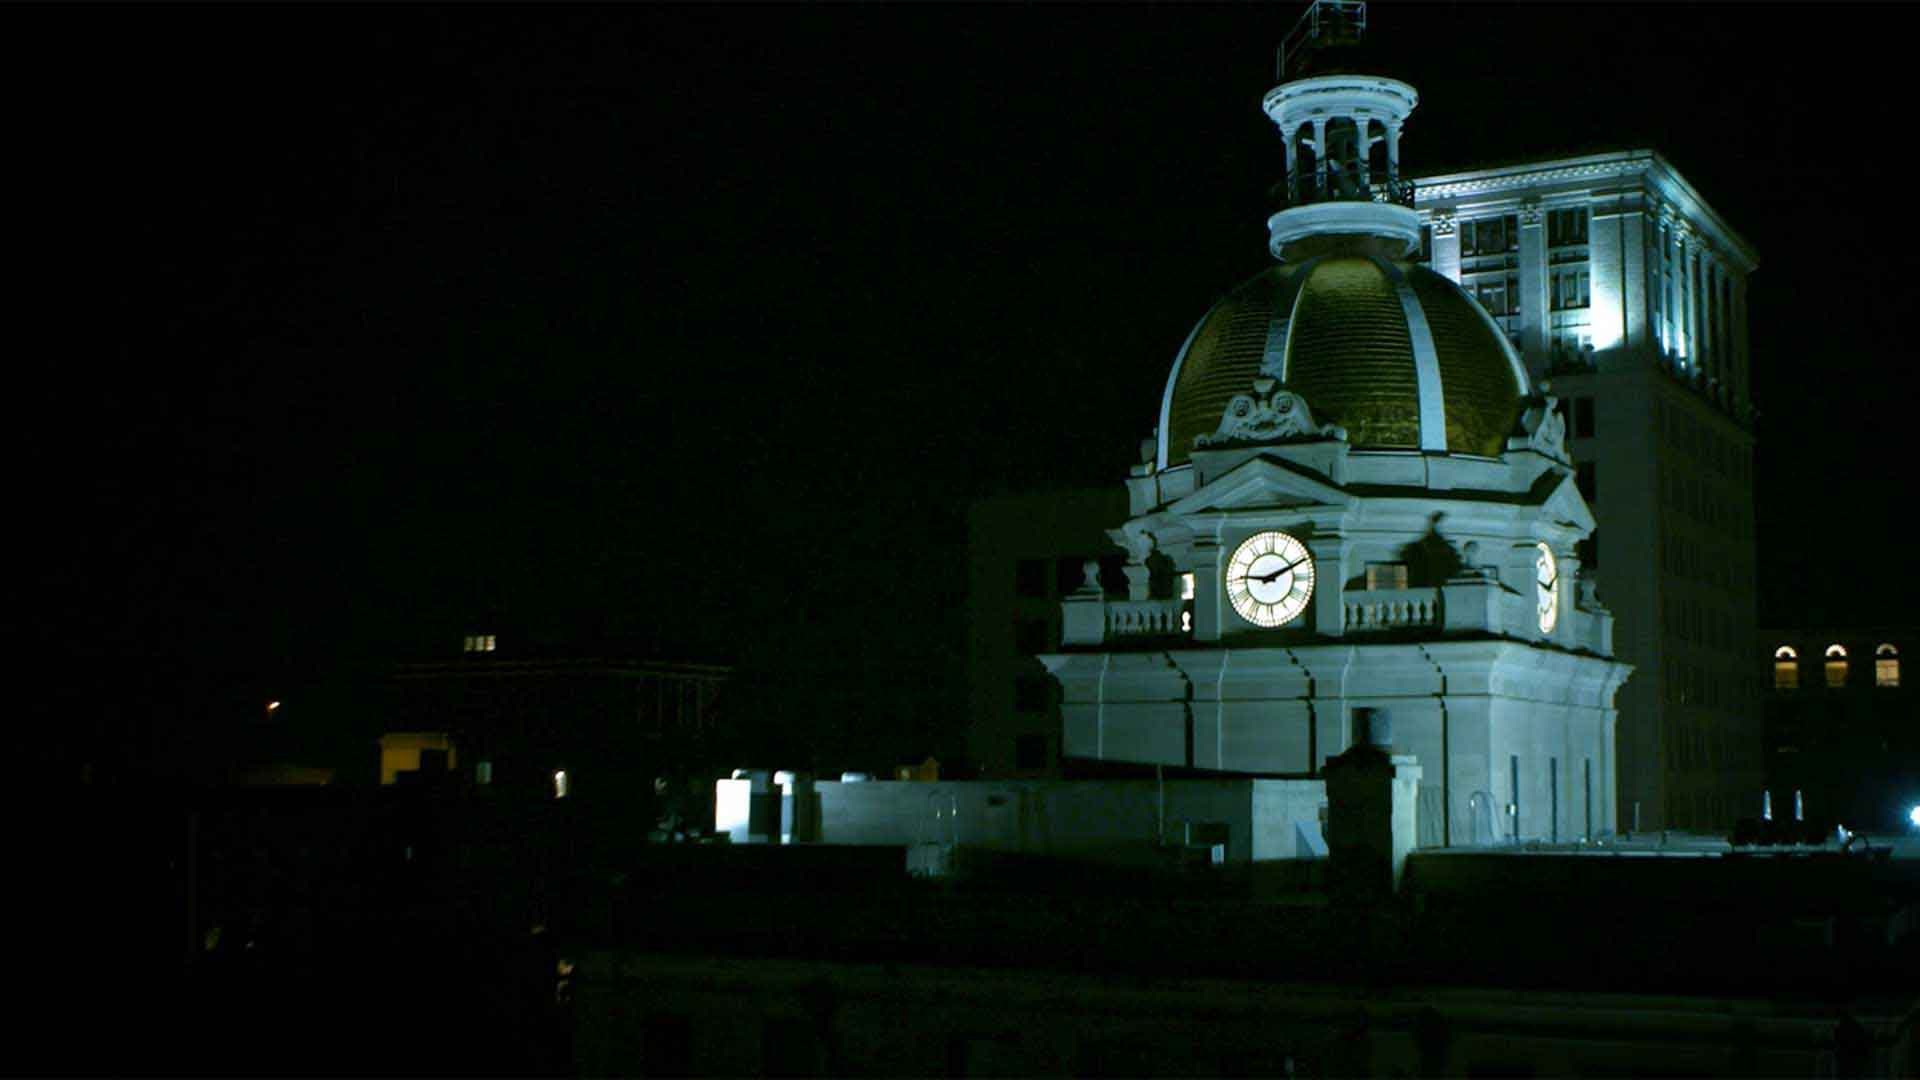 savannah clock tower at night